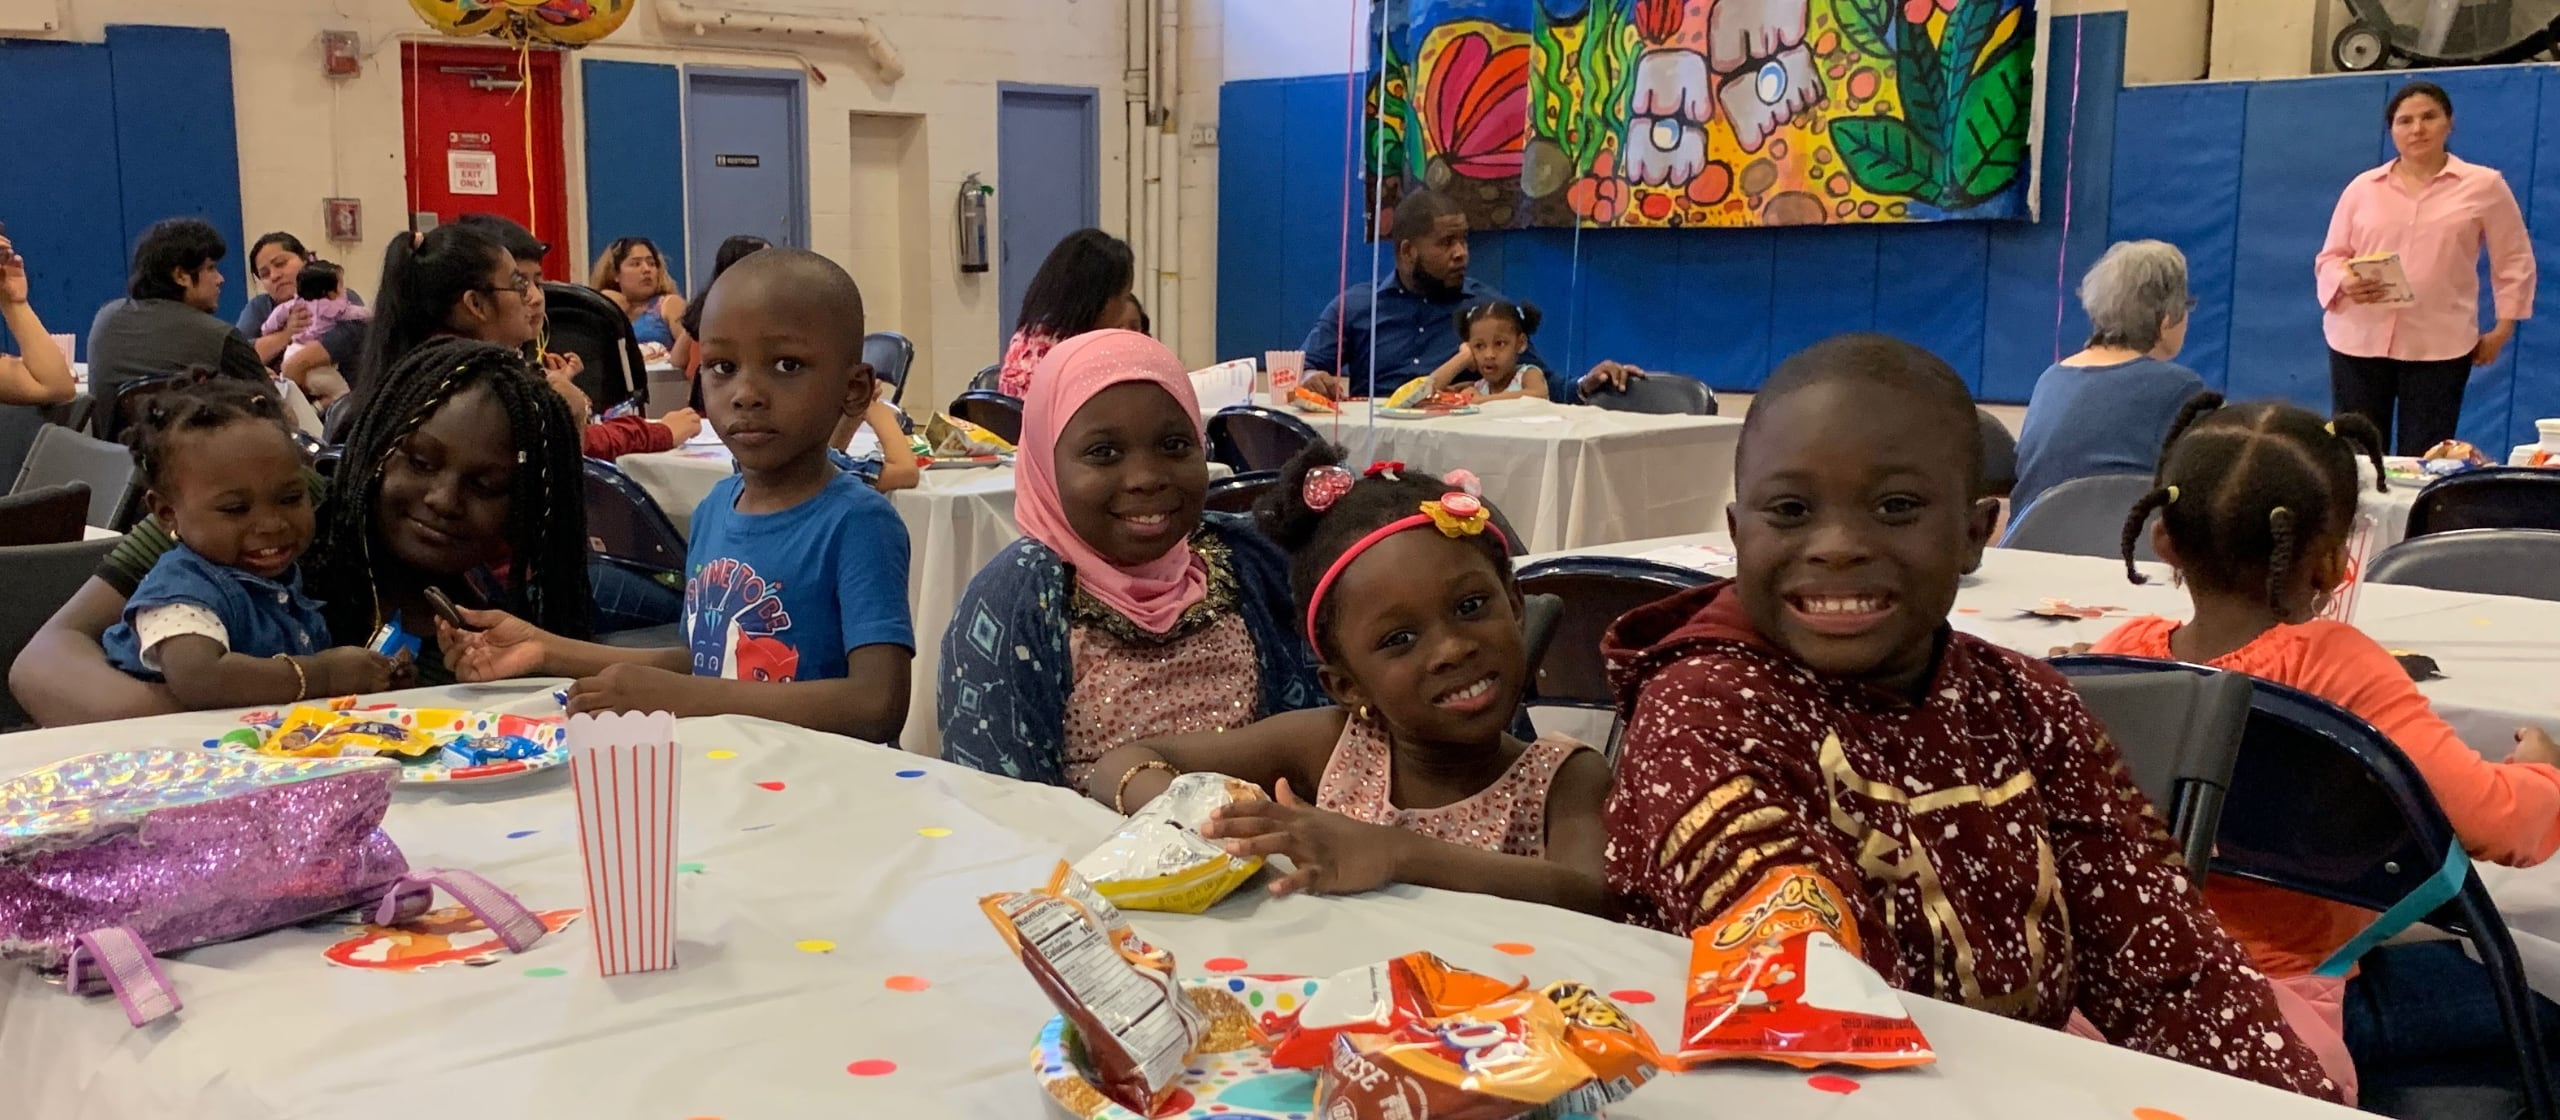 A group of children smiling looking at the camera while eating snacks